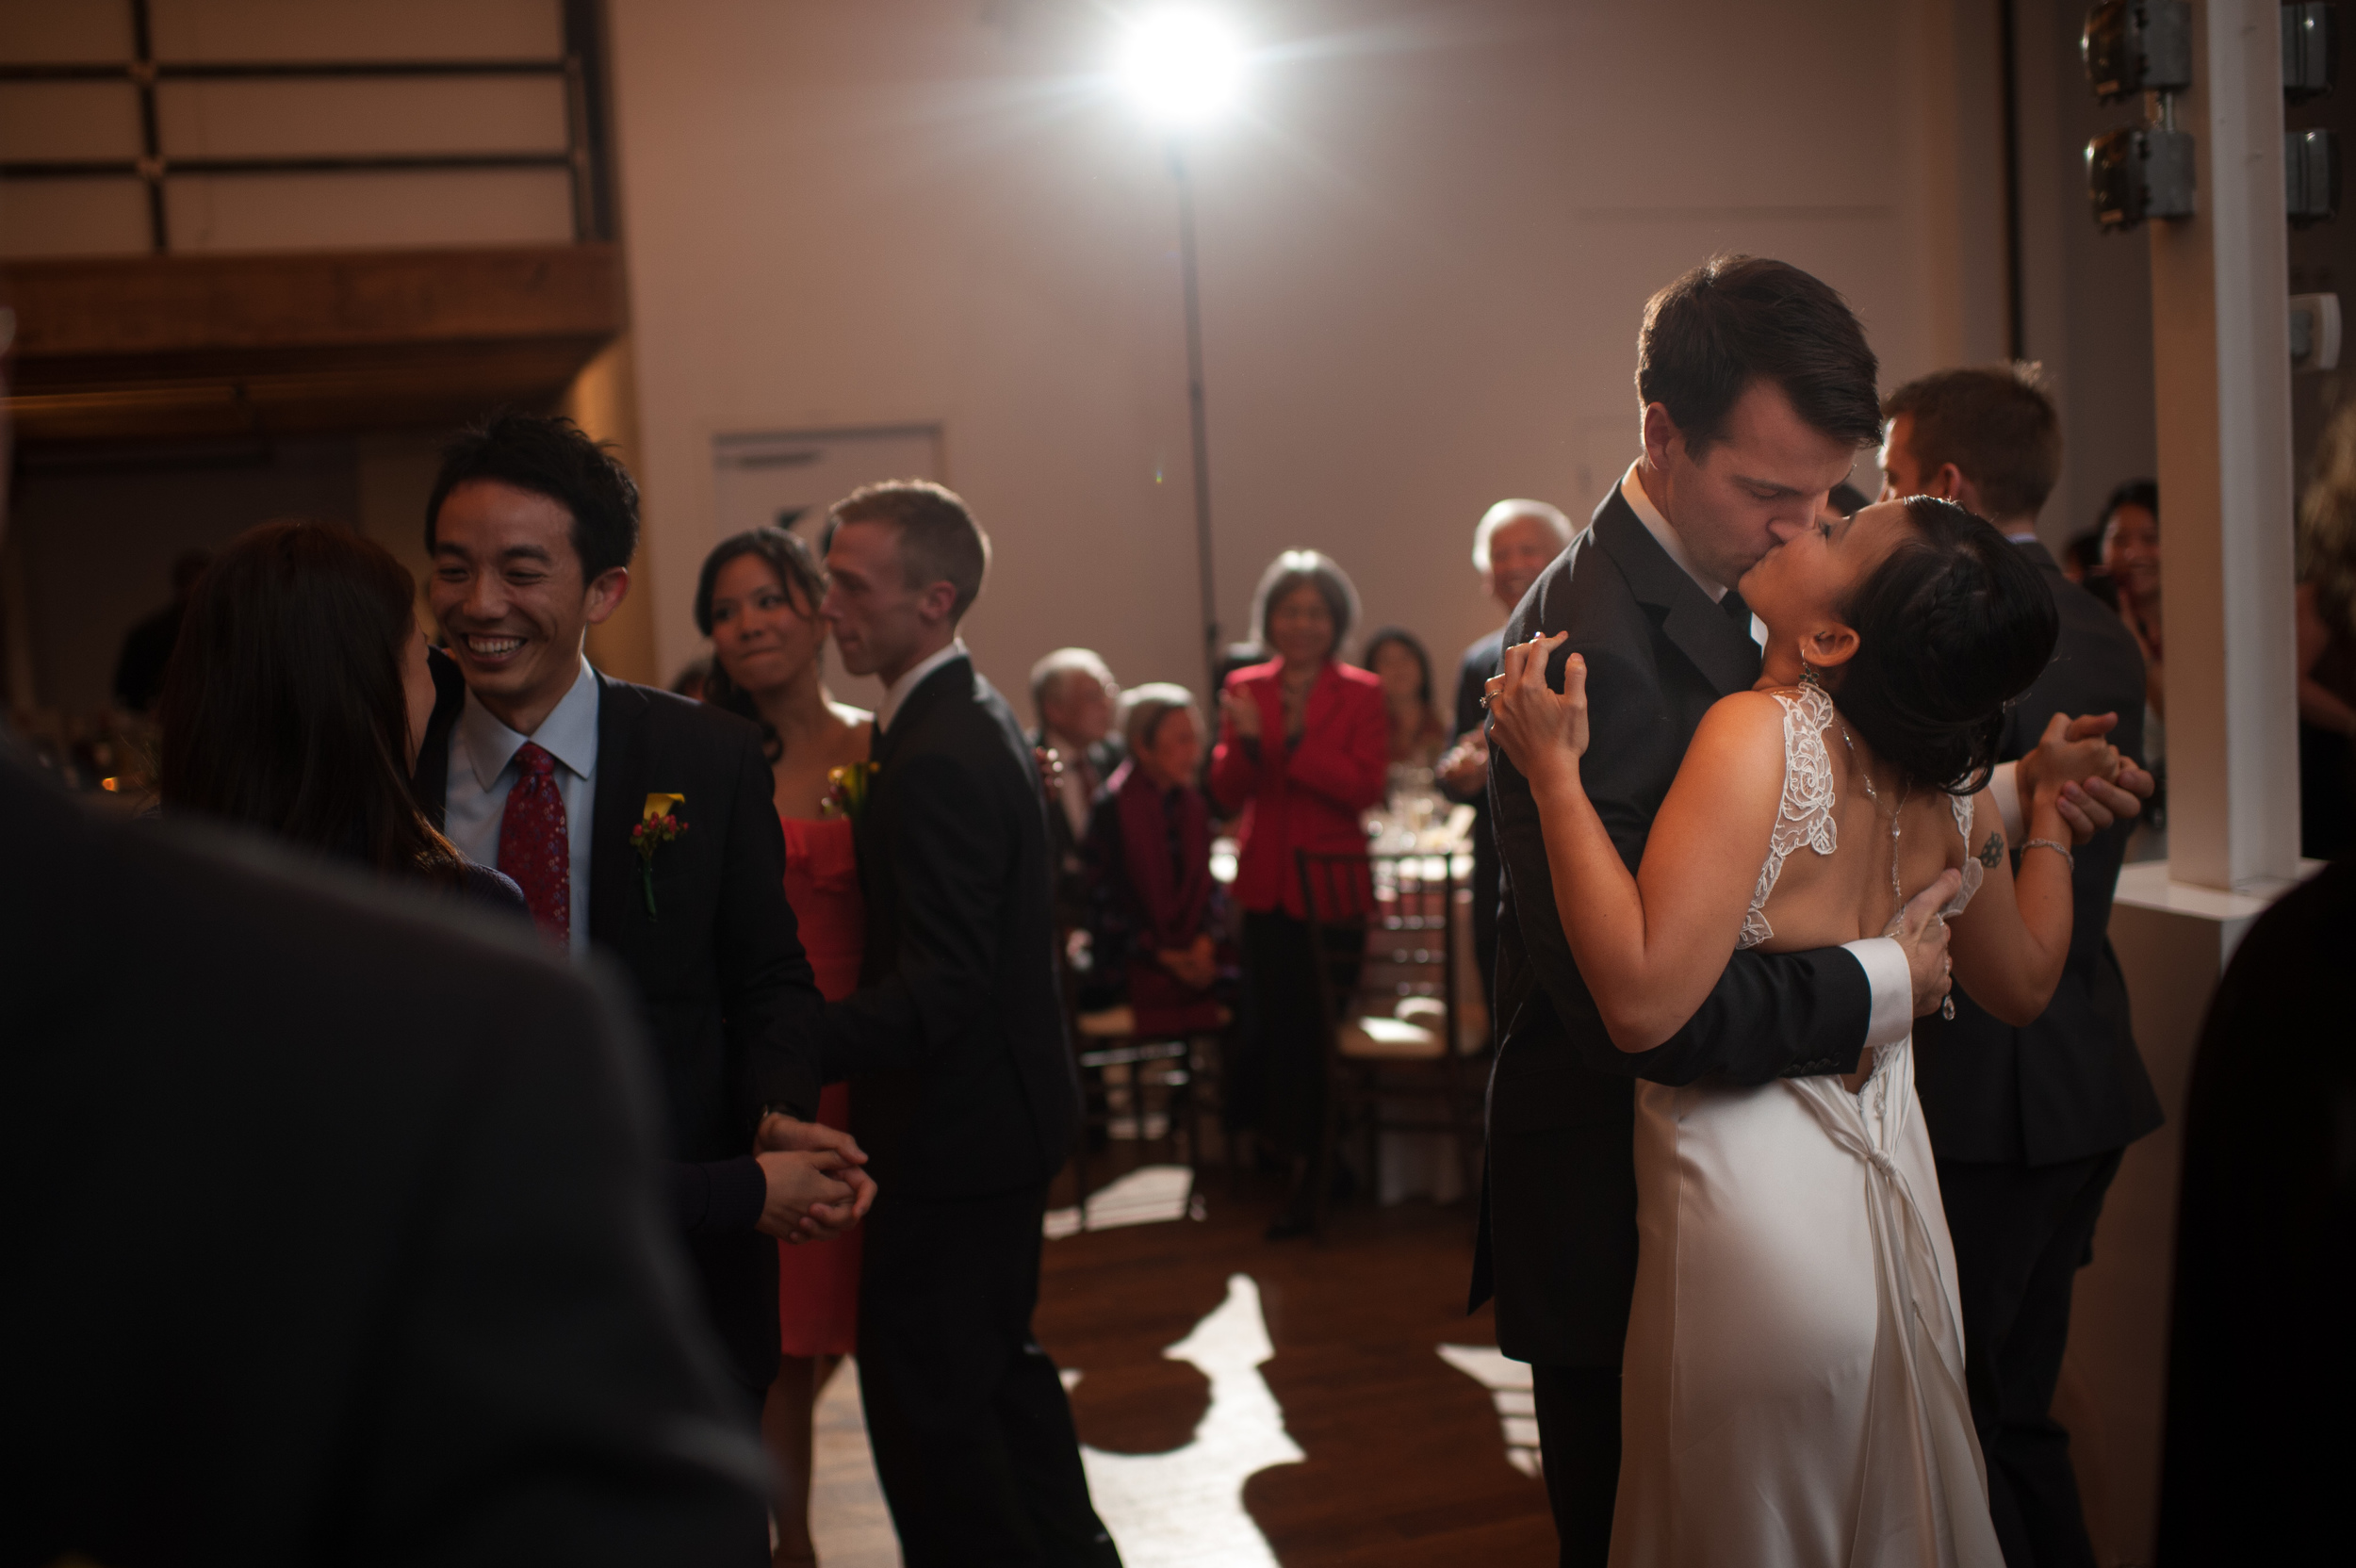 Evelyn + Wayne steal a kiss during their first dance at their wedding reception.